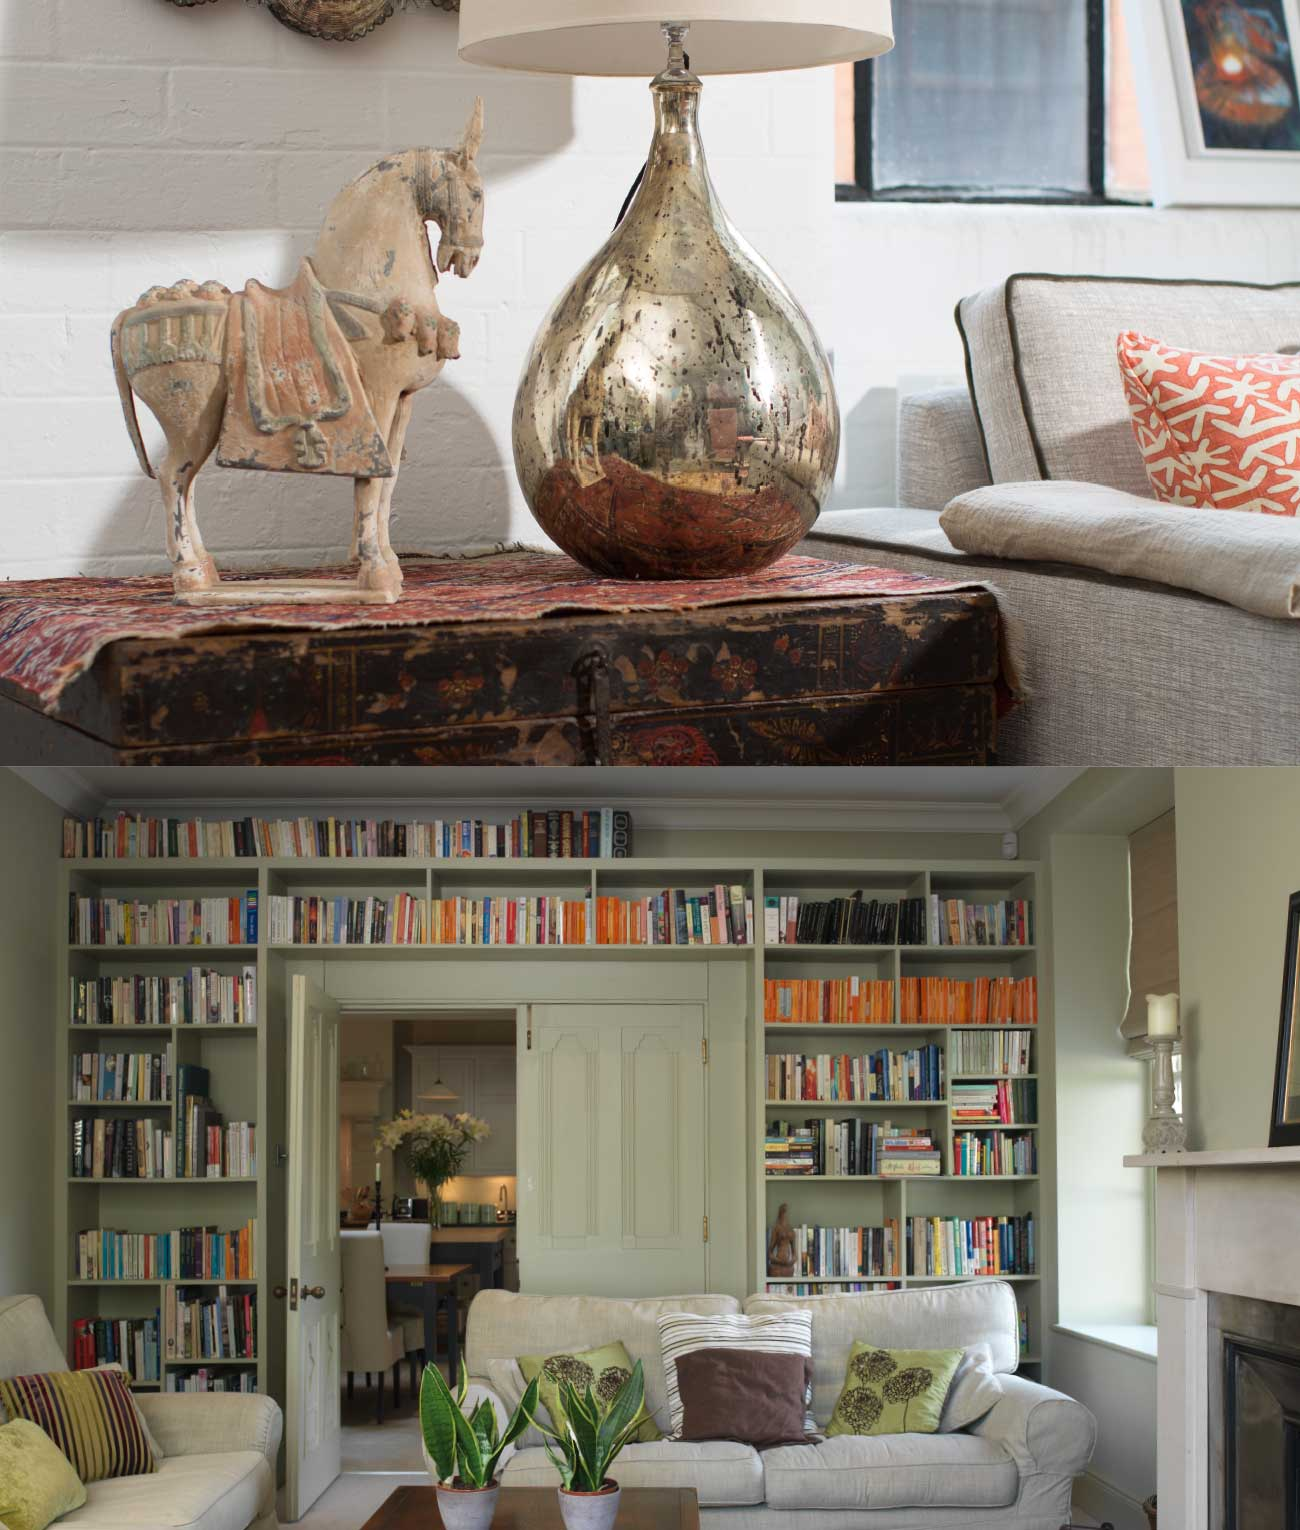 Thompson Clarke Interiors Furniture Design and Sourcing 3